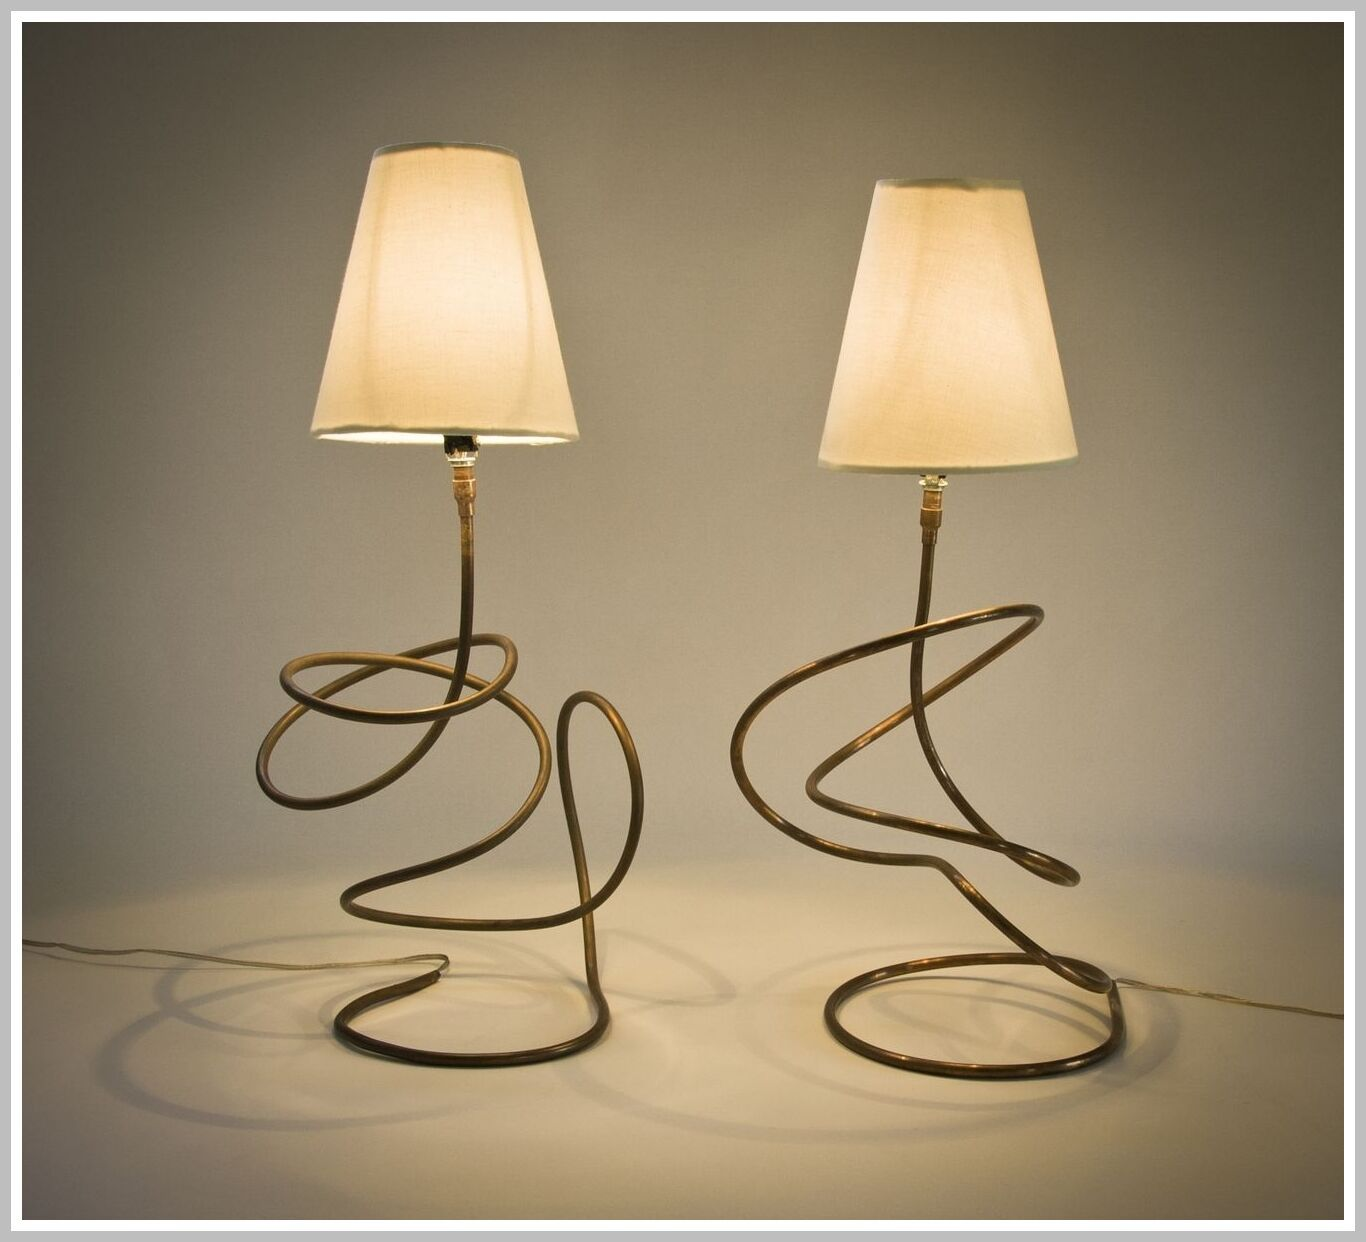 123 Reference Of Night Stand Lamp With Night Light In 2020 Night Stand Light Lamp Nightstand Lamp